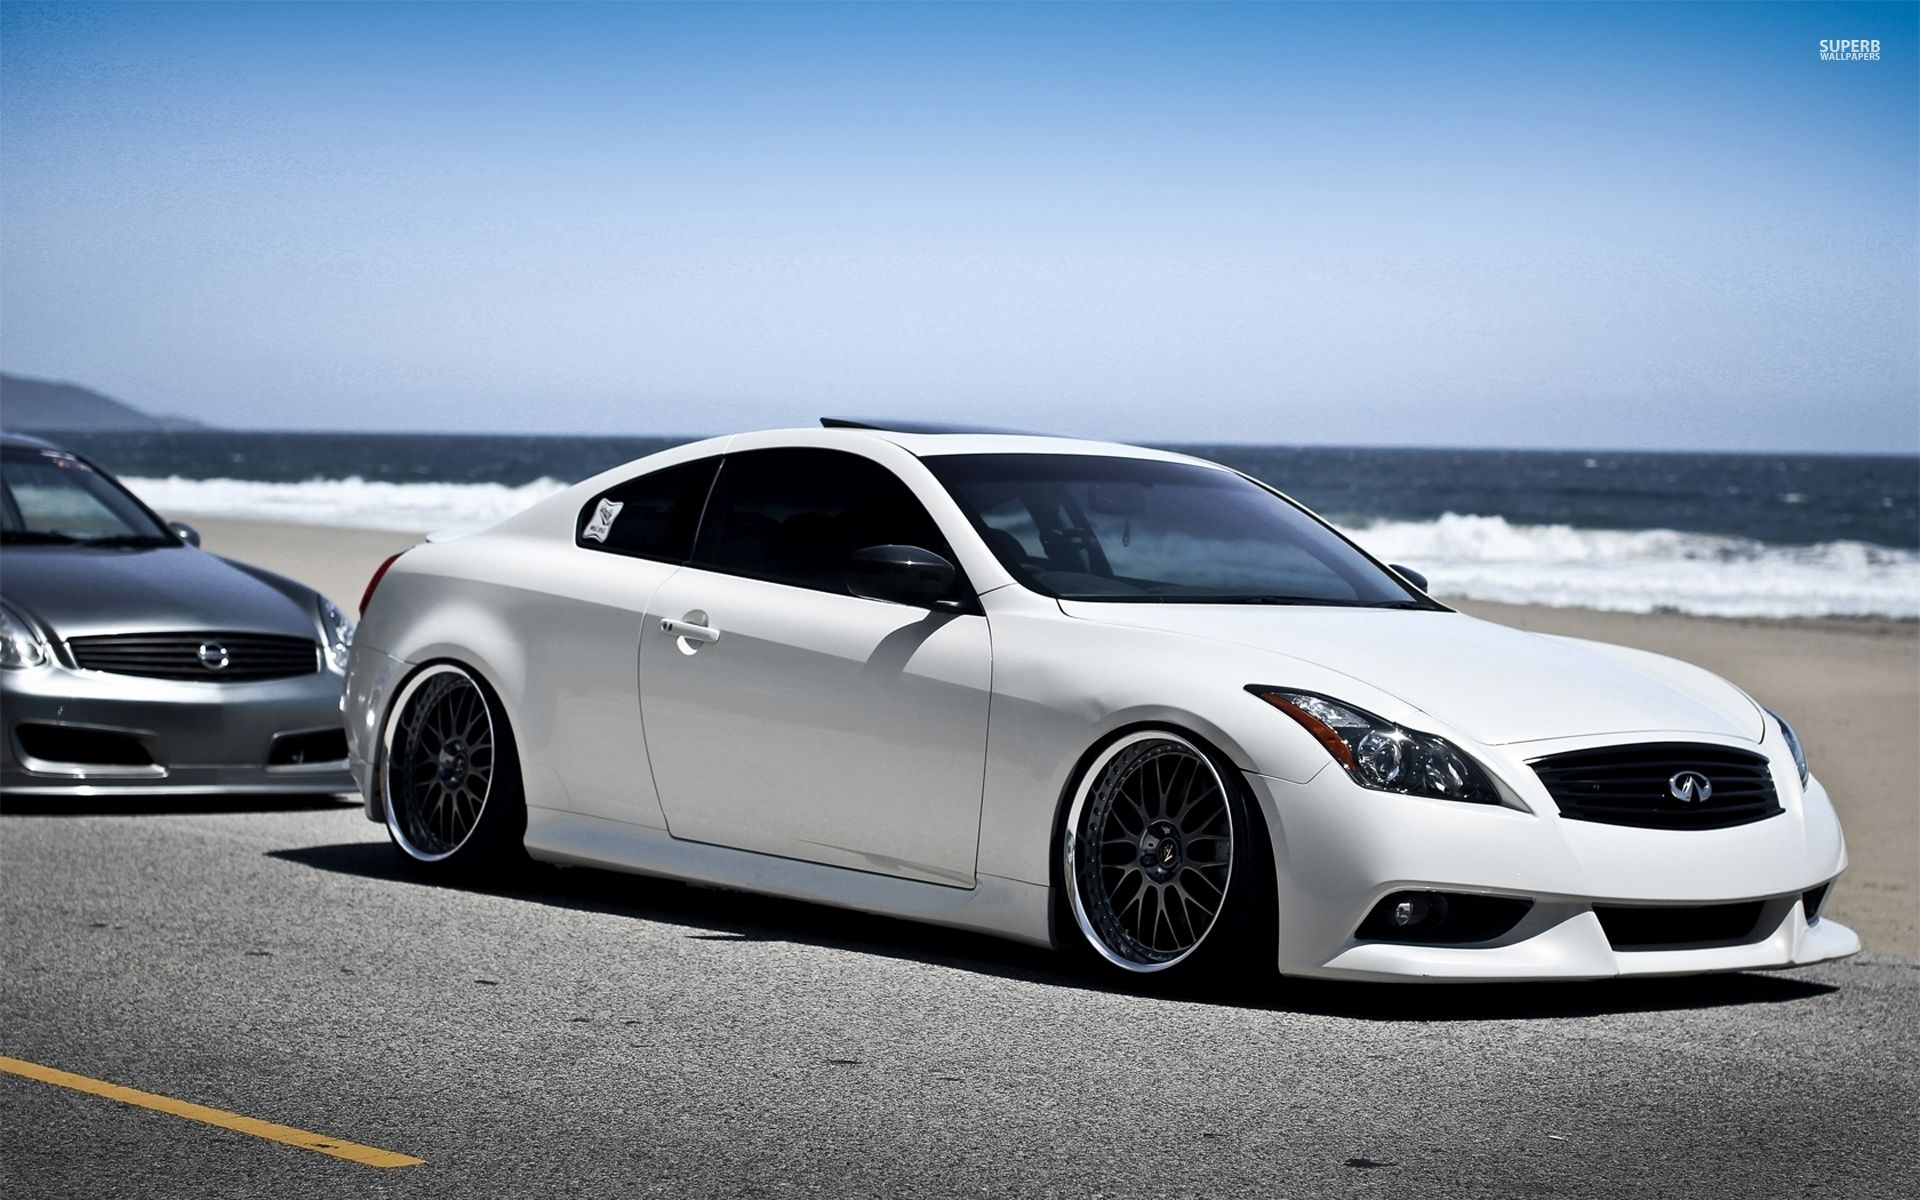 G37 coupe google search infiniti g35g37q60 pinterest g37 coupe google search infiniti g35g37q60 pinterest coupe infiniti g37 and car wallpapers vanachro Images